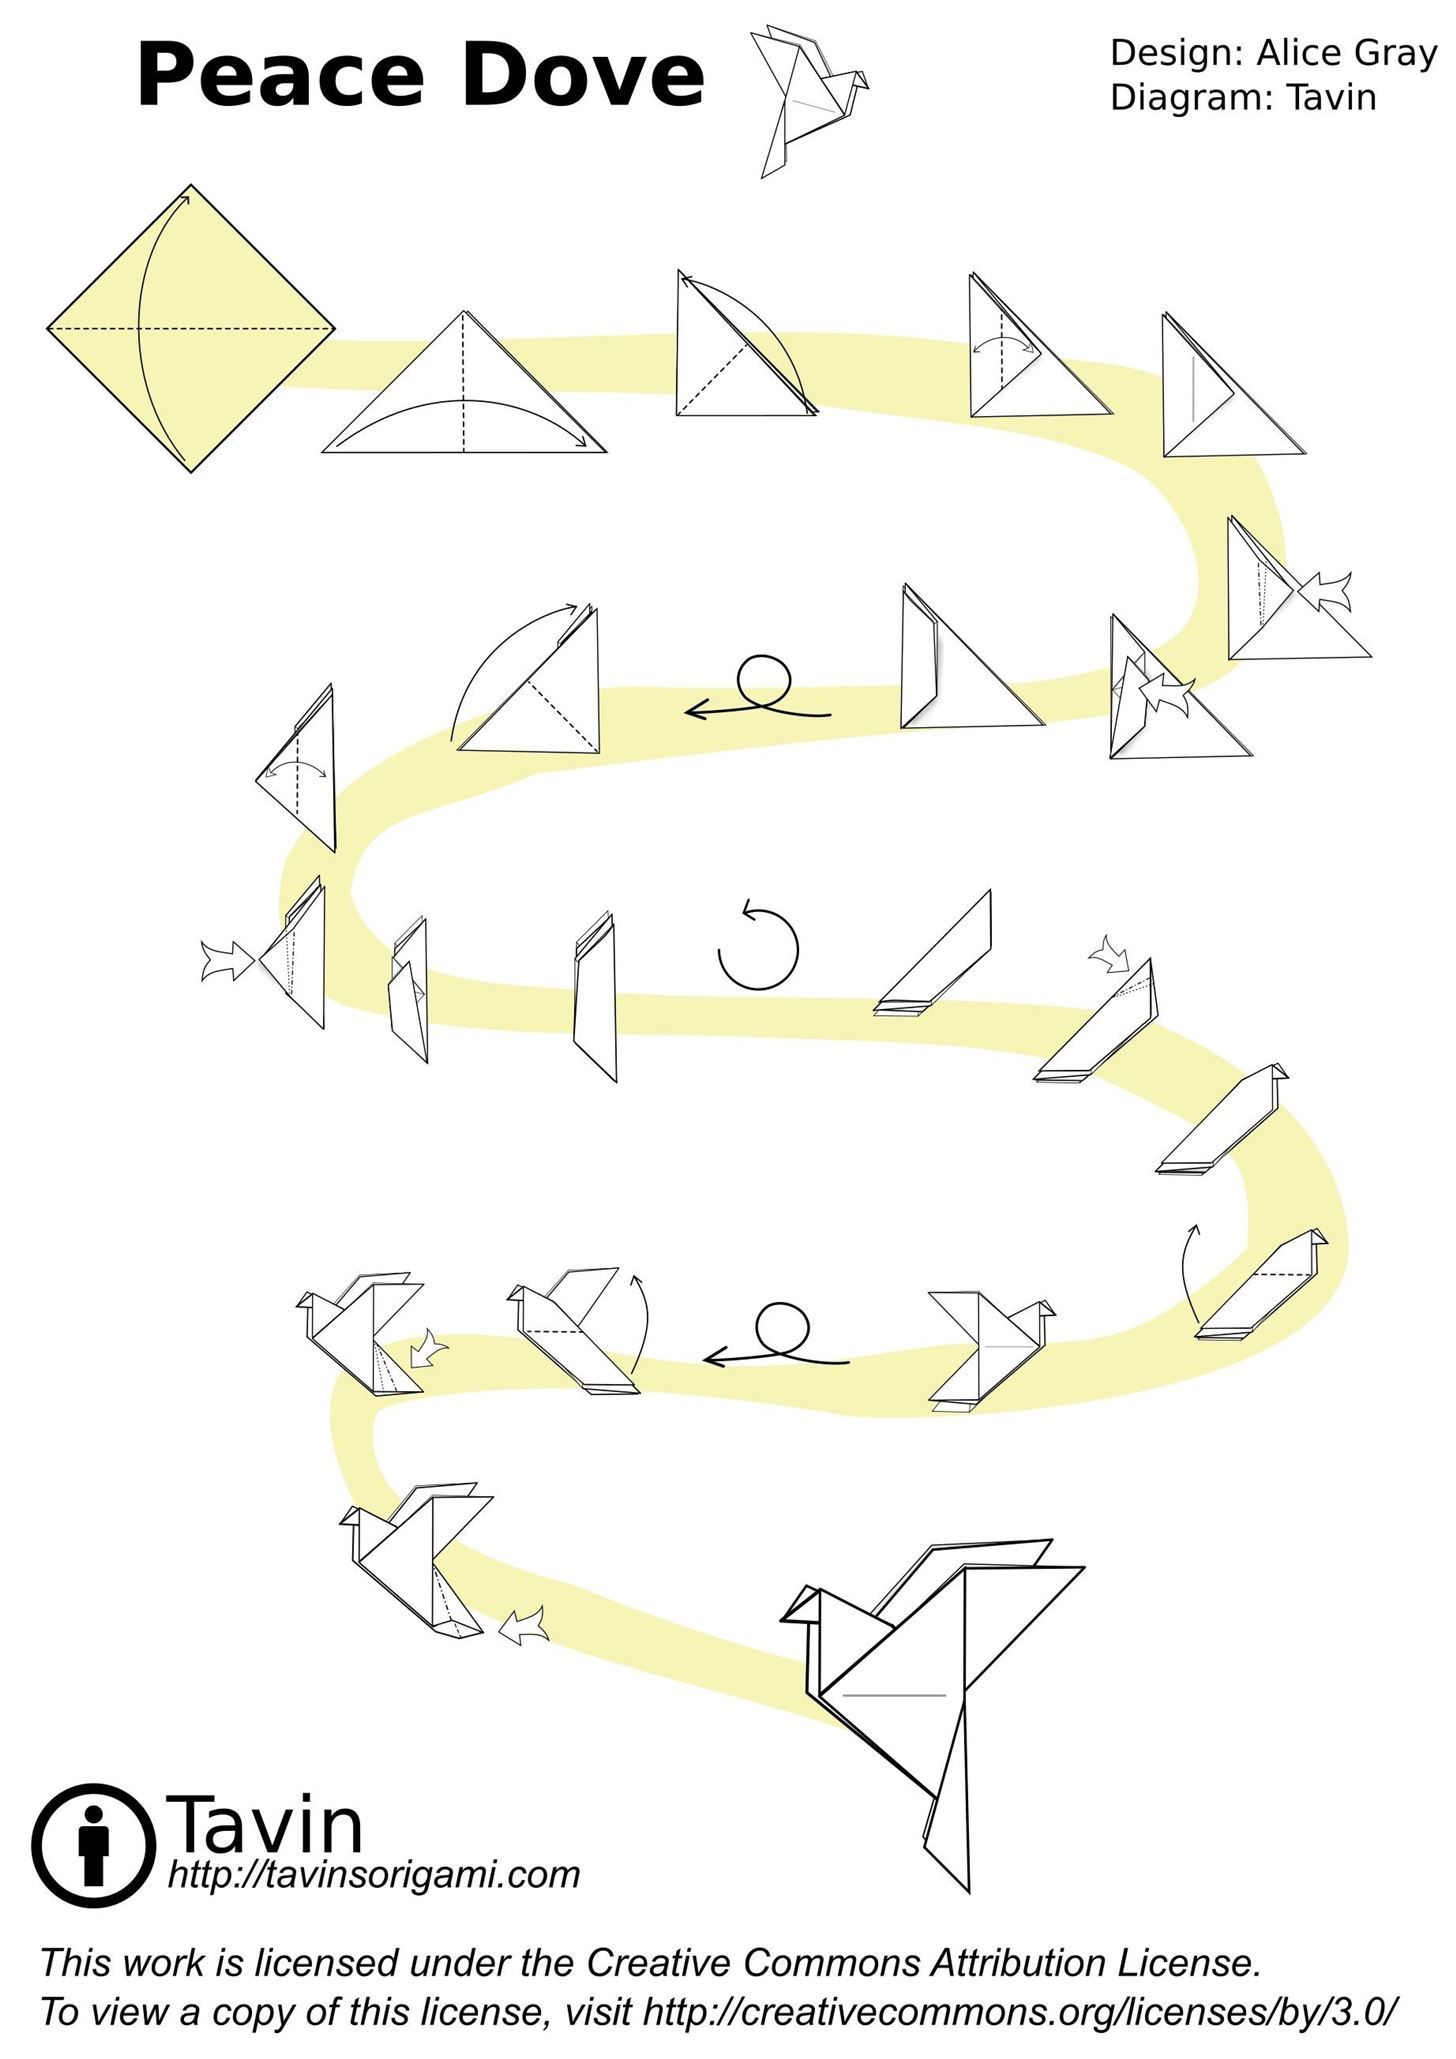 origami dove diagram yamaha g2 golf cart wiring fold a peace from sheet of paper  tavin 39s